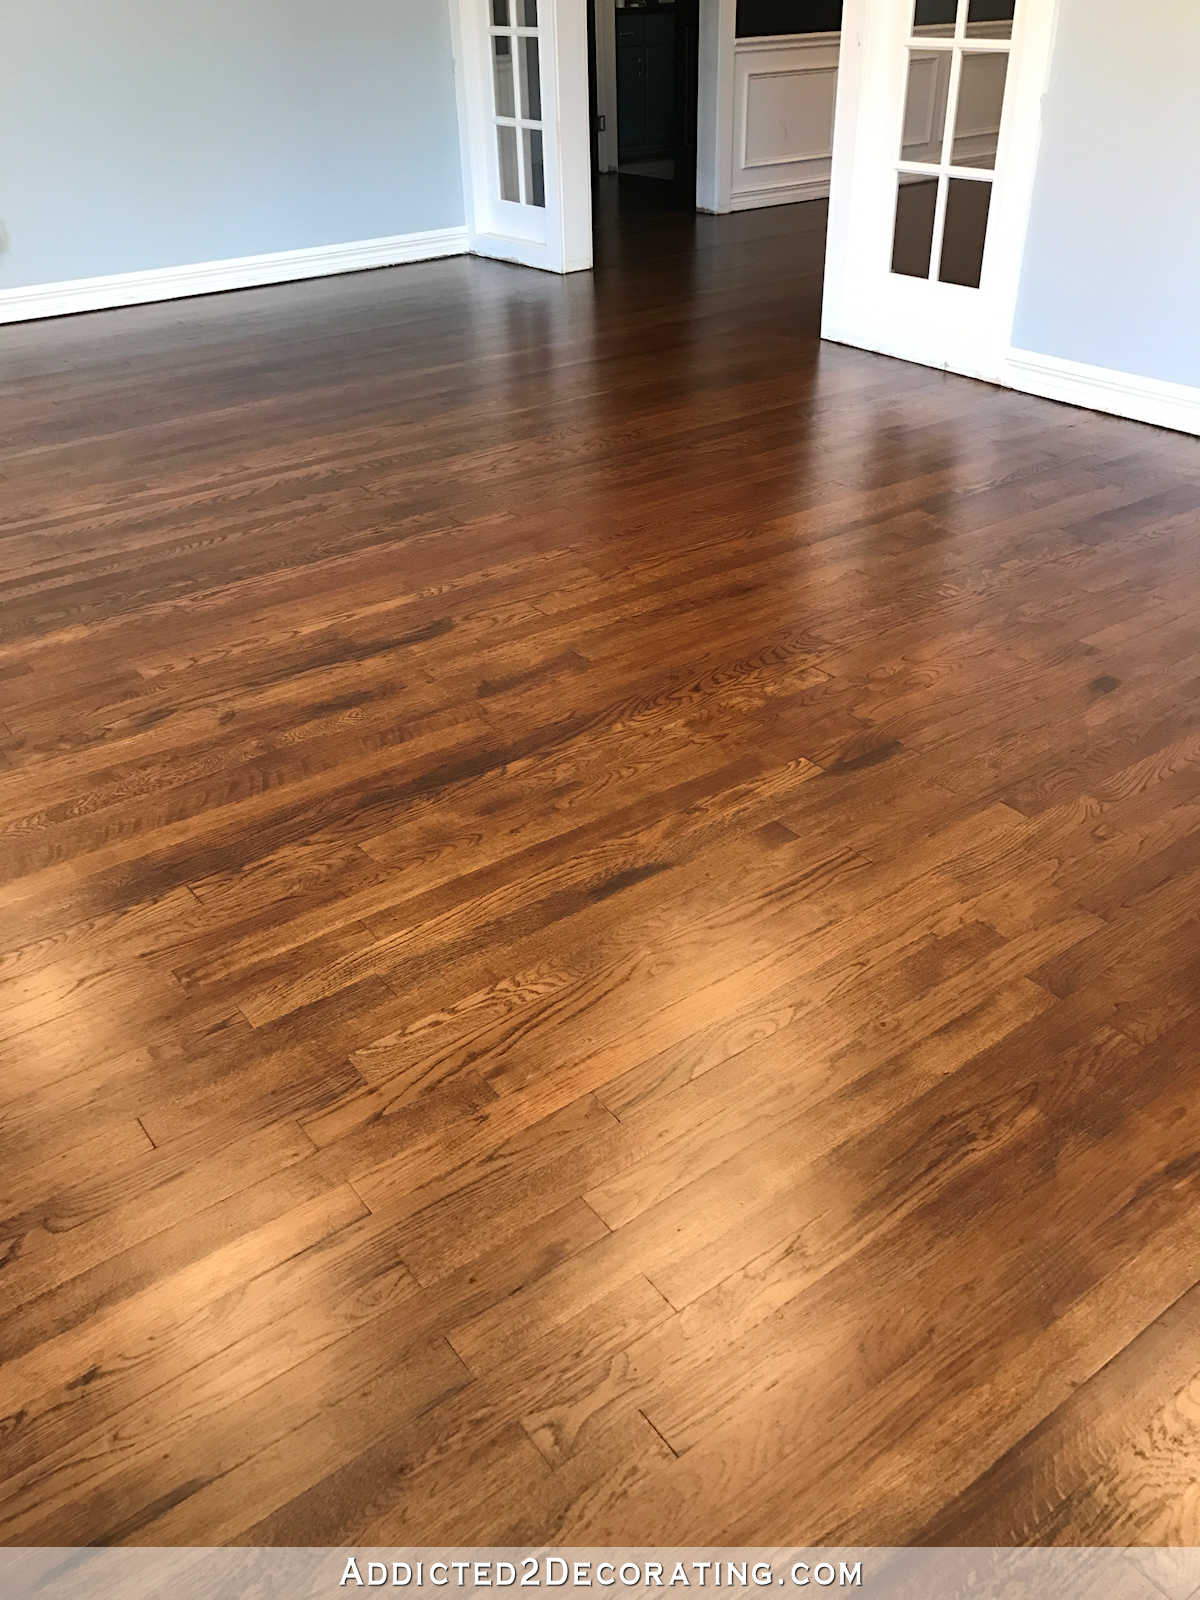 Refinished red oak hardwood floors living room entryway and music room